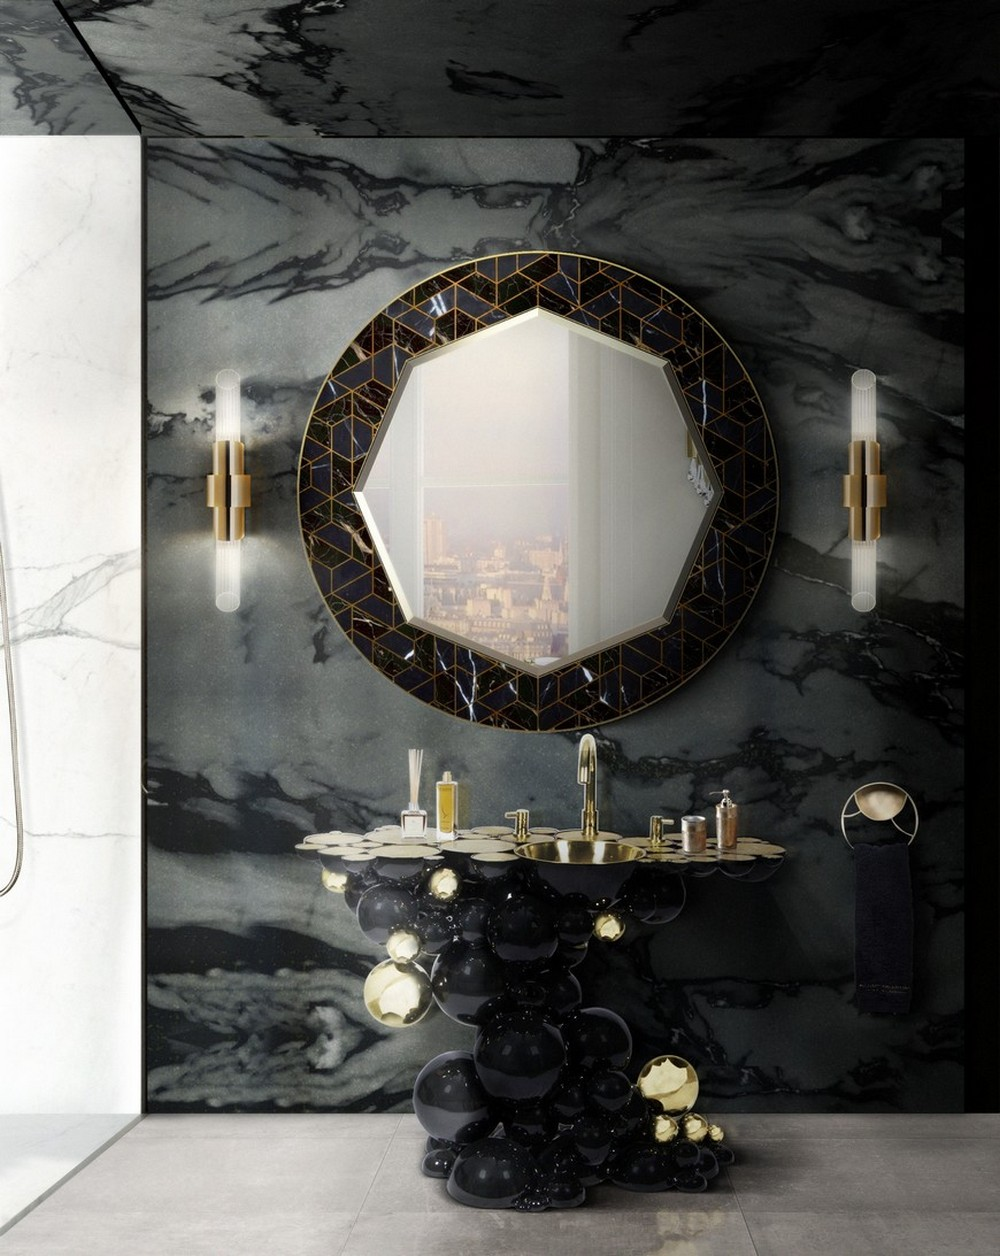 The Ultimate Design Trend For A Perfect Luxury Bathroom Design luxury bathroom design The Ultimate Design Trend For A Perfect Luxury Bathroom Design The Ultimate Design Trend For A Perfect Luxury Bathroom Design 6